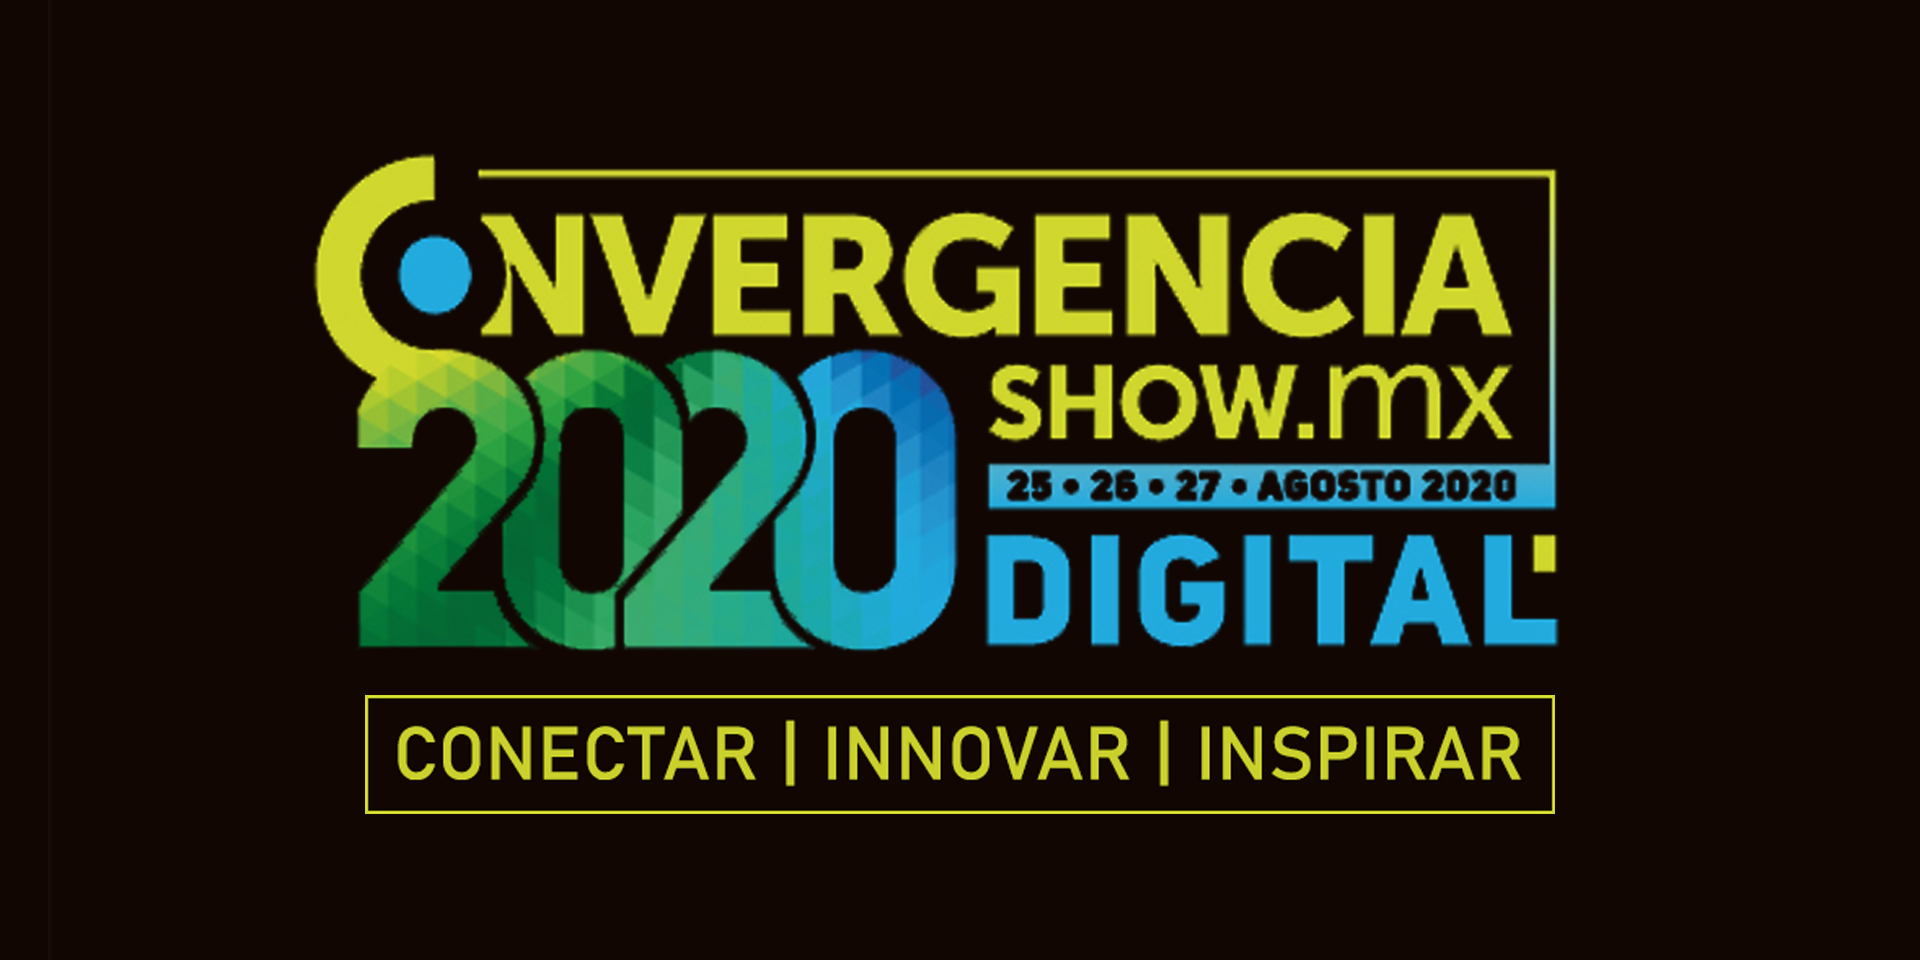 ConvergenceShow.Mx 2020 Will Be Digital